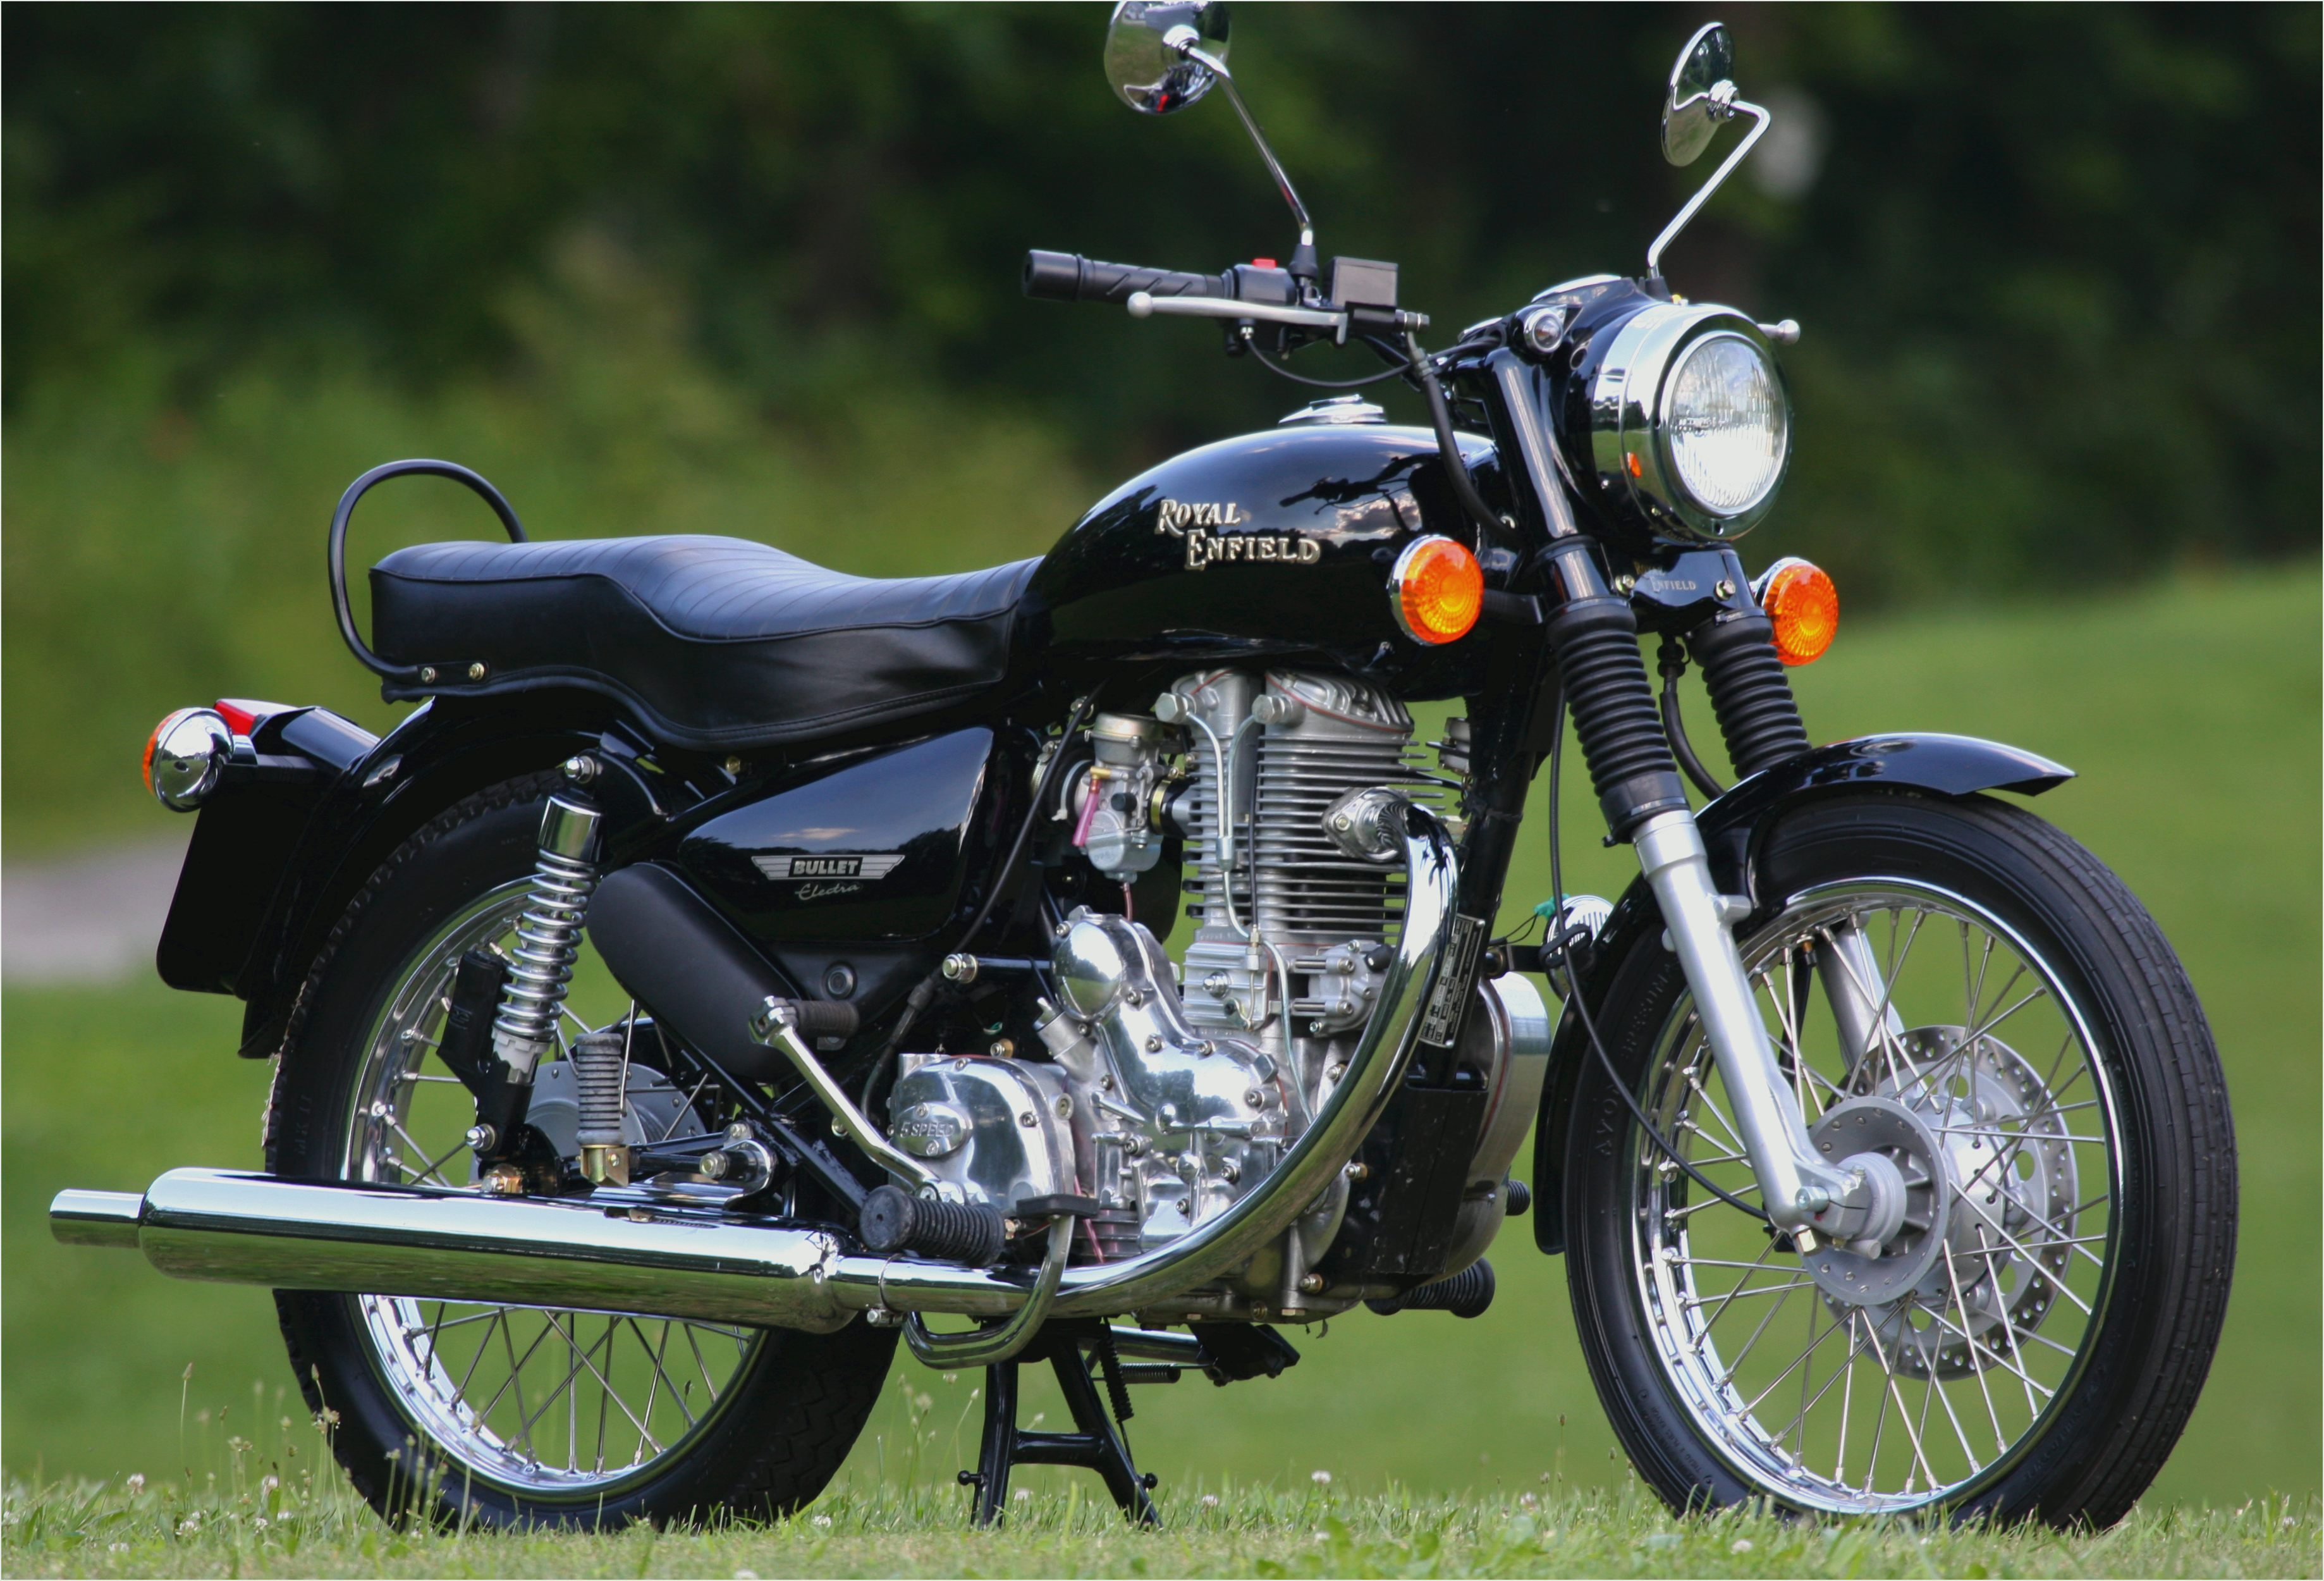 Royal Enfield Bullet 500 S Clubman 2009 images #123563